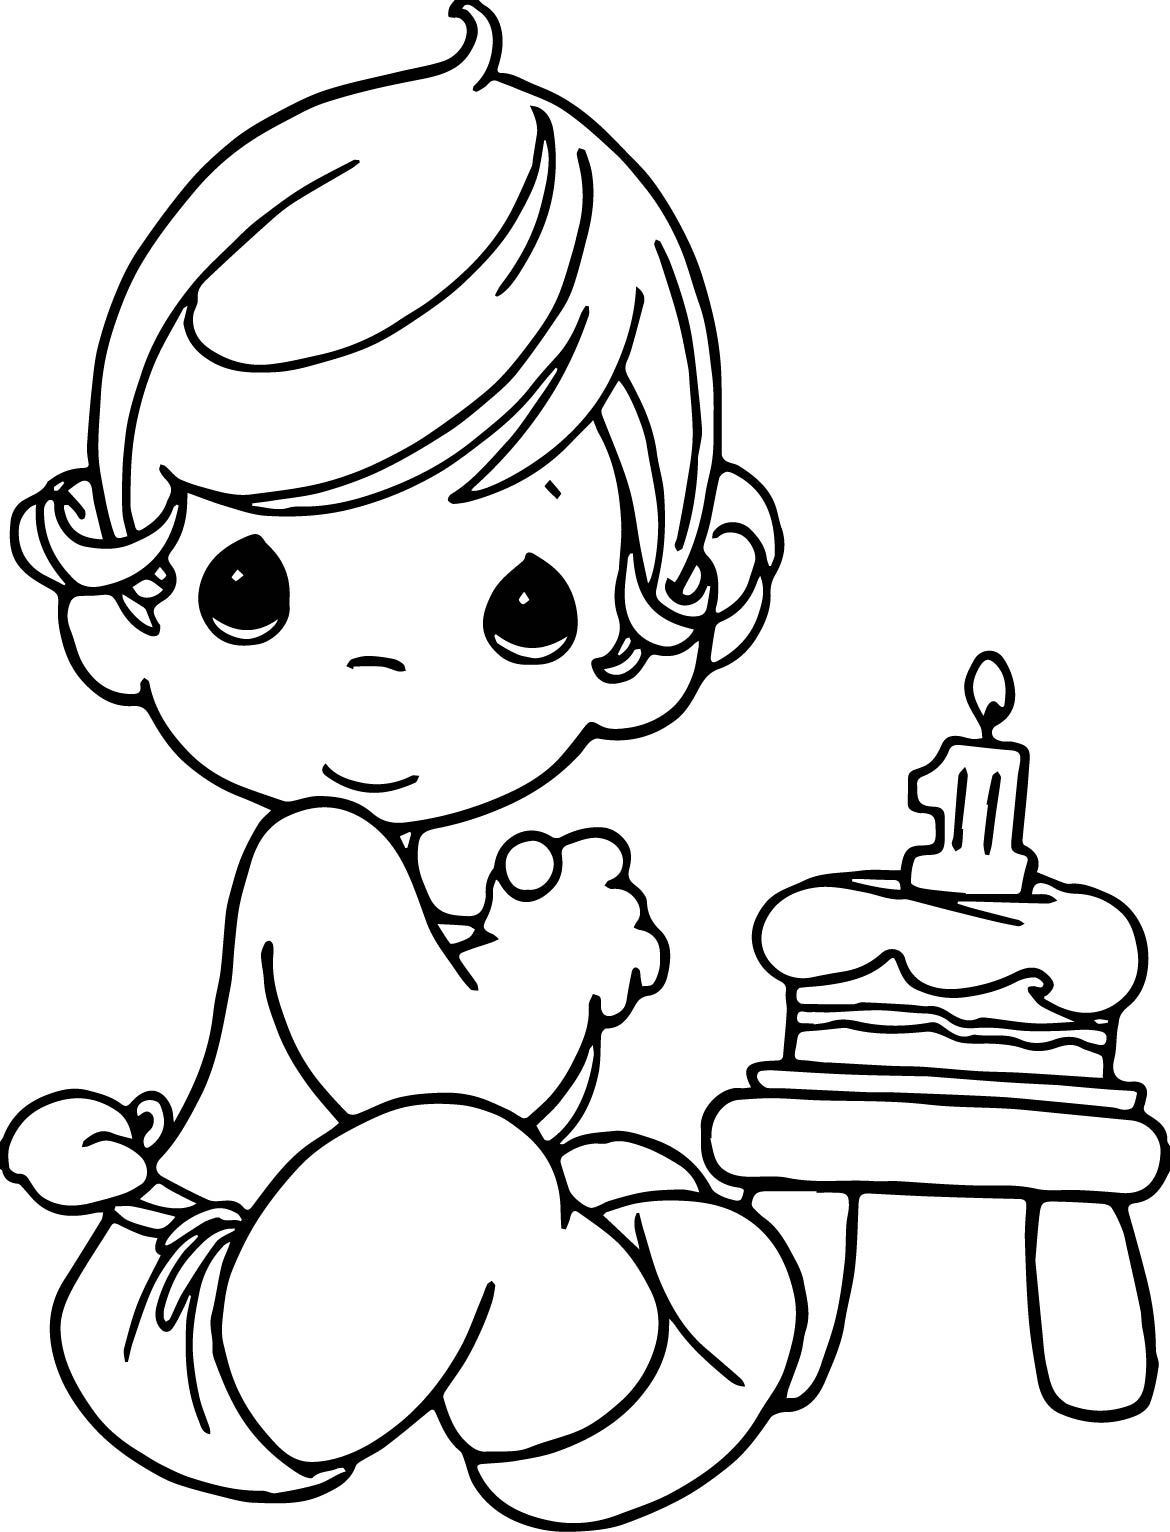 Precious moments birthday coloring page 2 precious for Coloring pages precious moments print